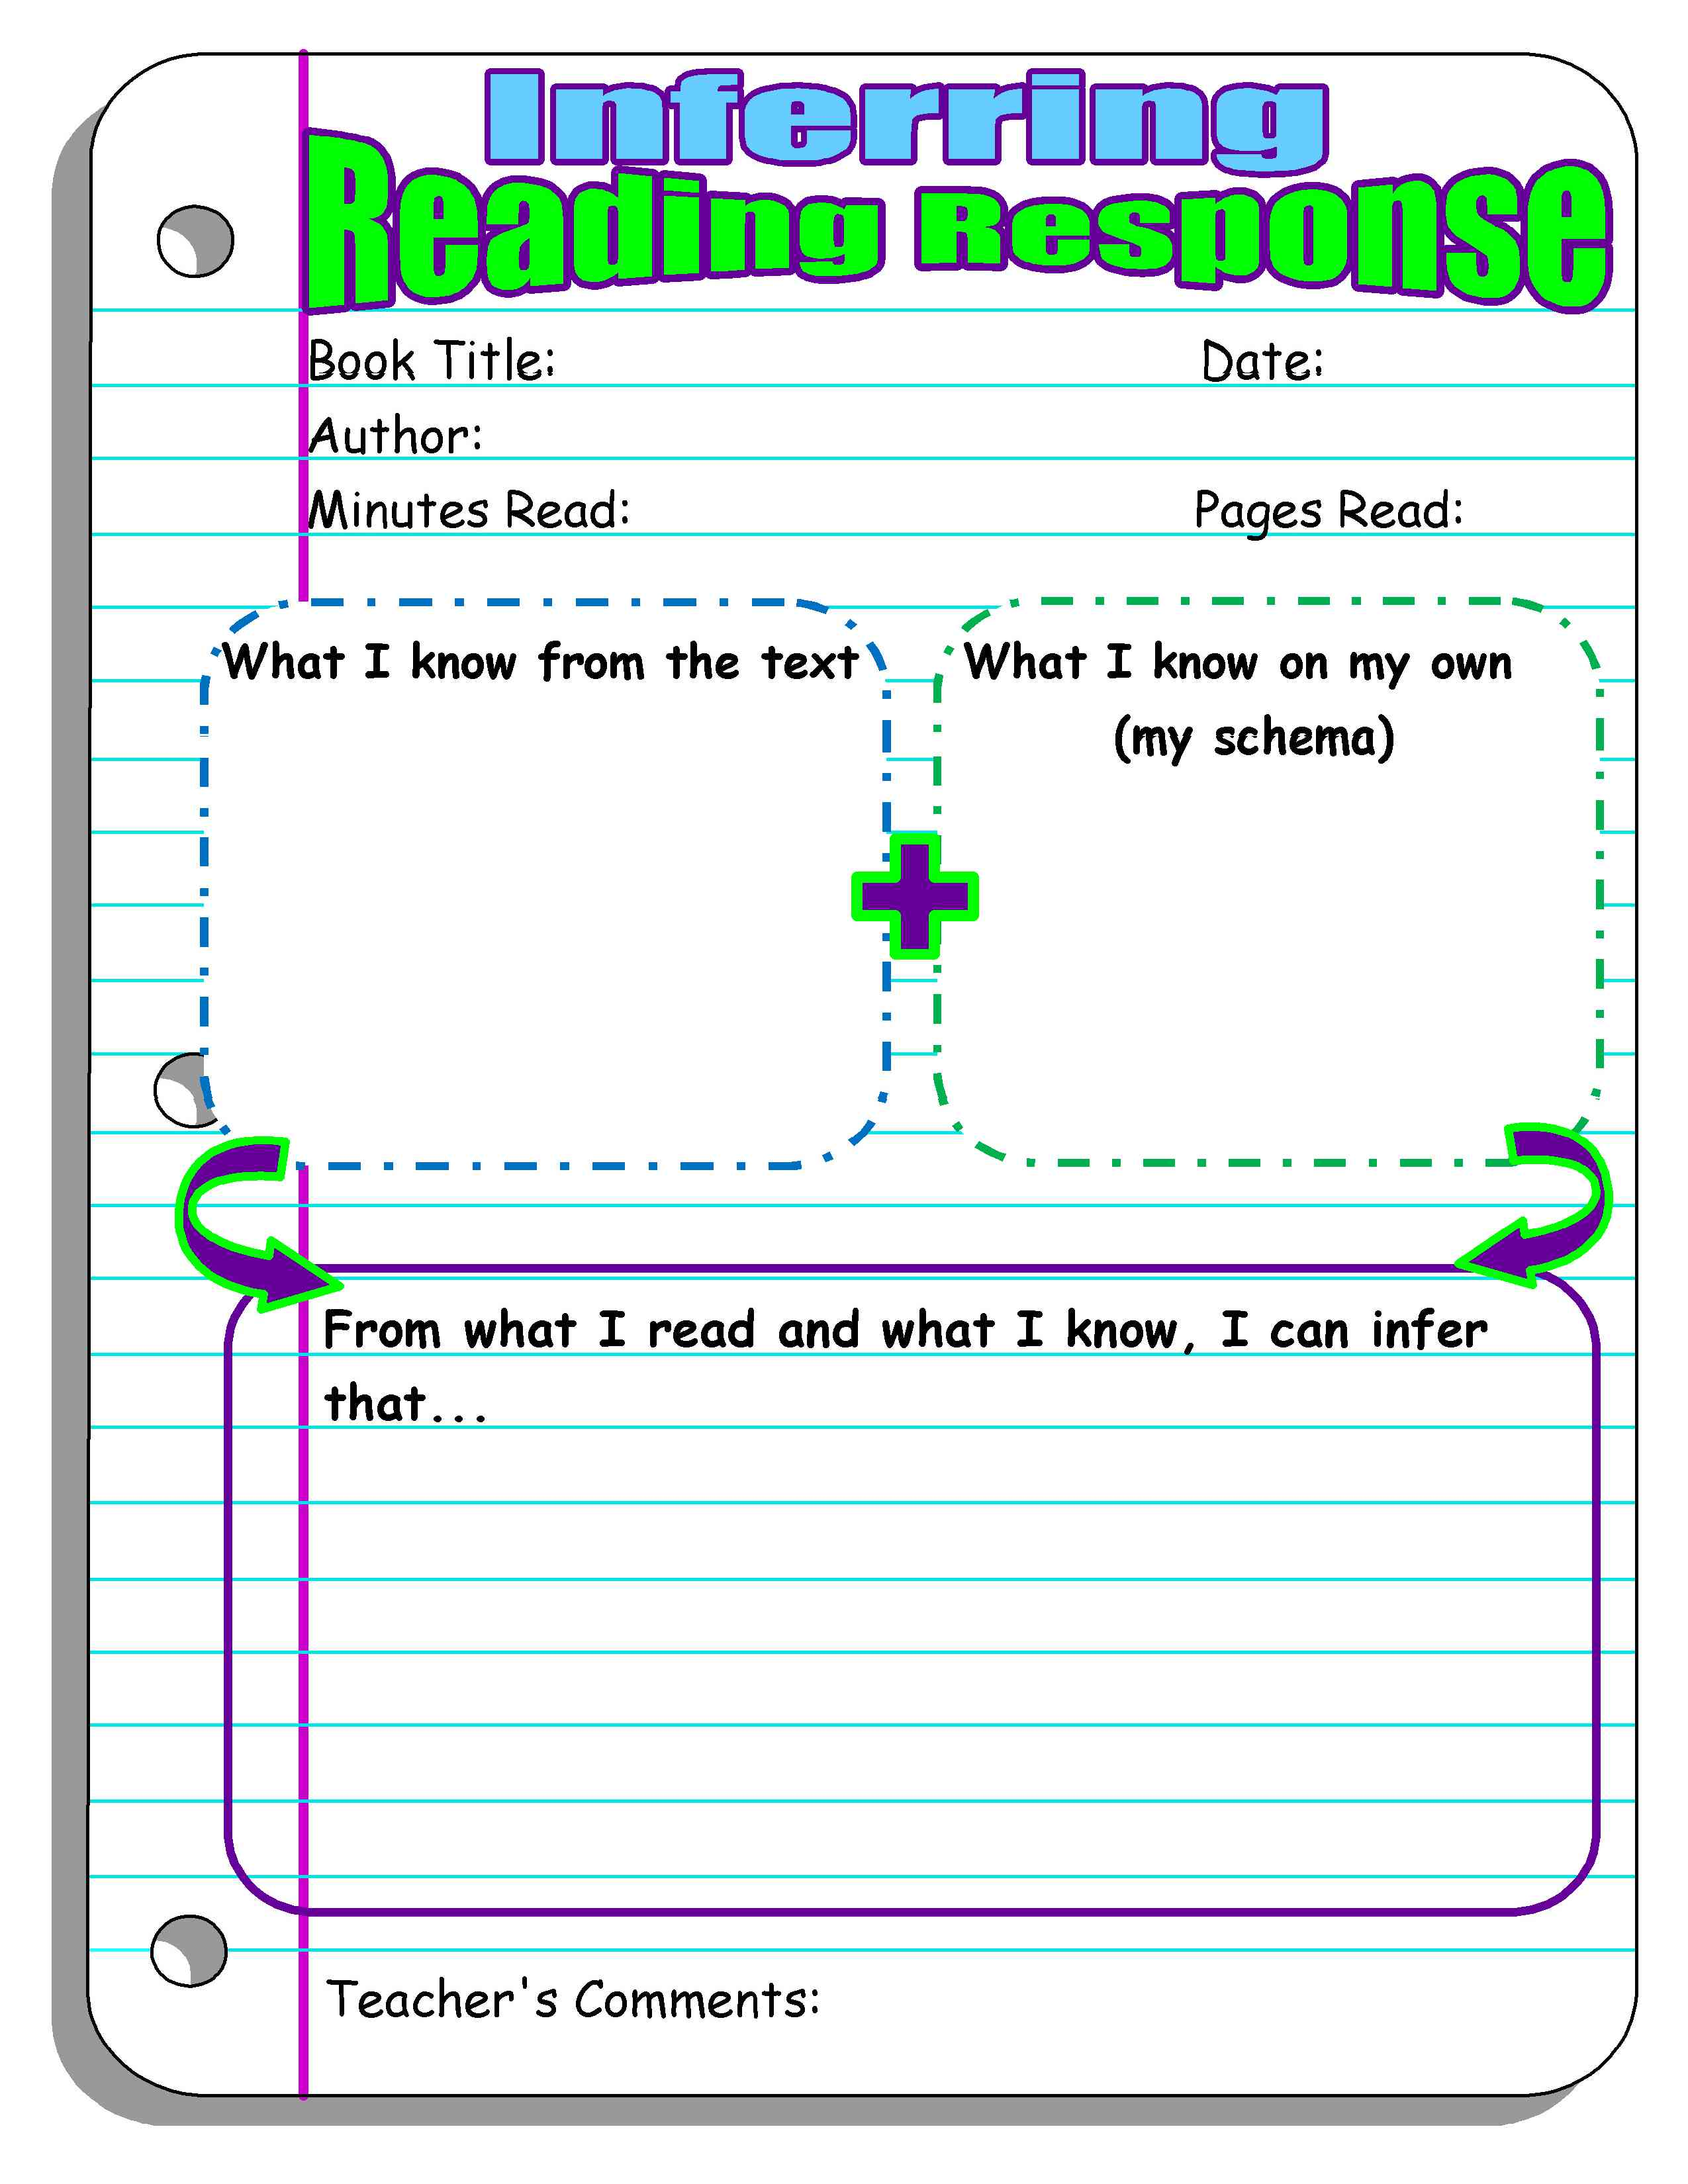 Book Cover Graphic Organizer ~ Reading response forms and graphic organizers scholastic